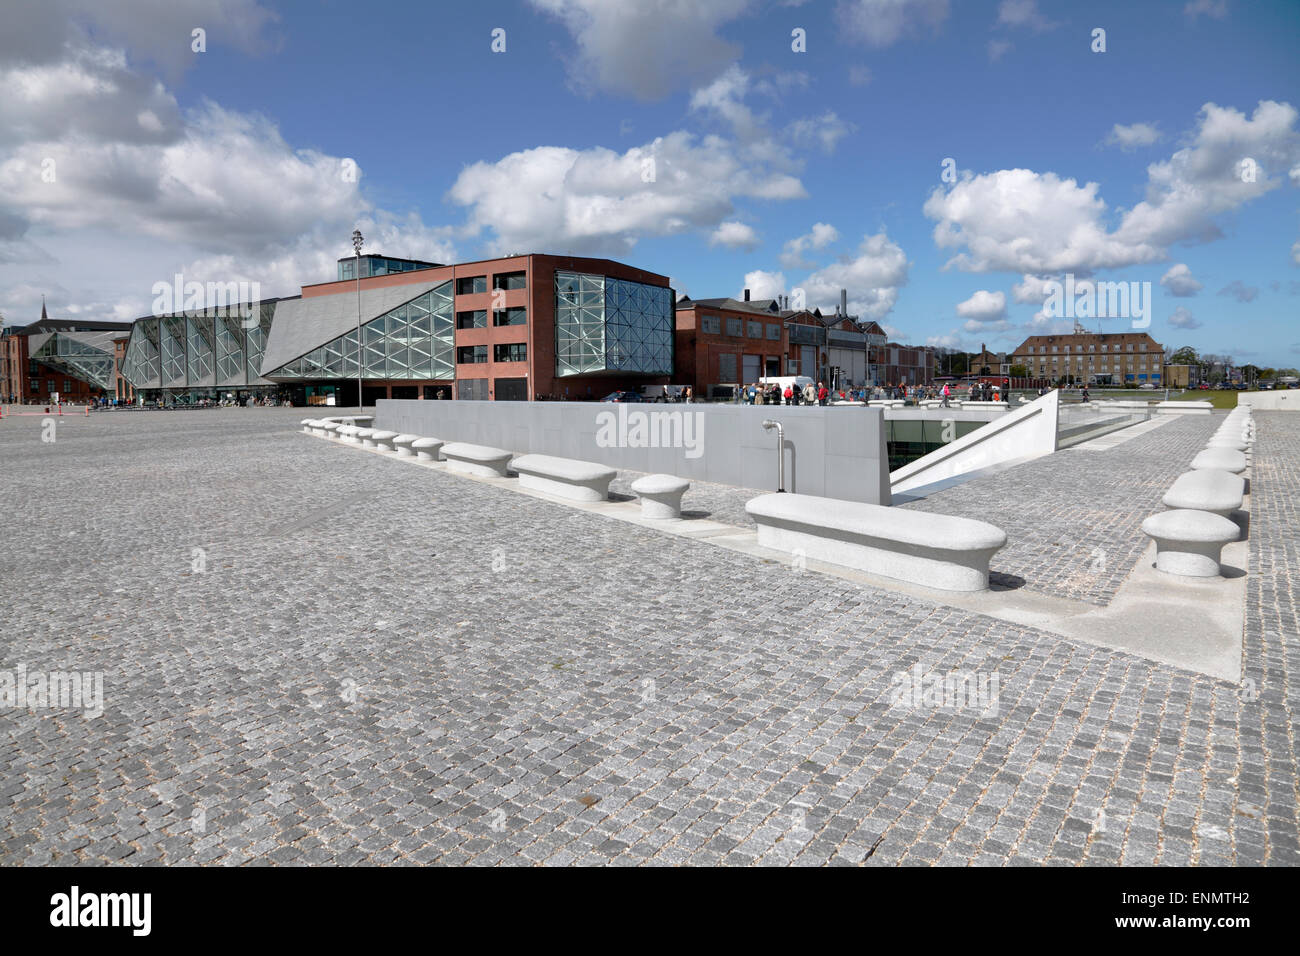 The underground Danish Maritime Museum next to the Culture Yard in Elsinore / Helsingør, Denmark. Bollards - Stock Image